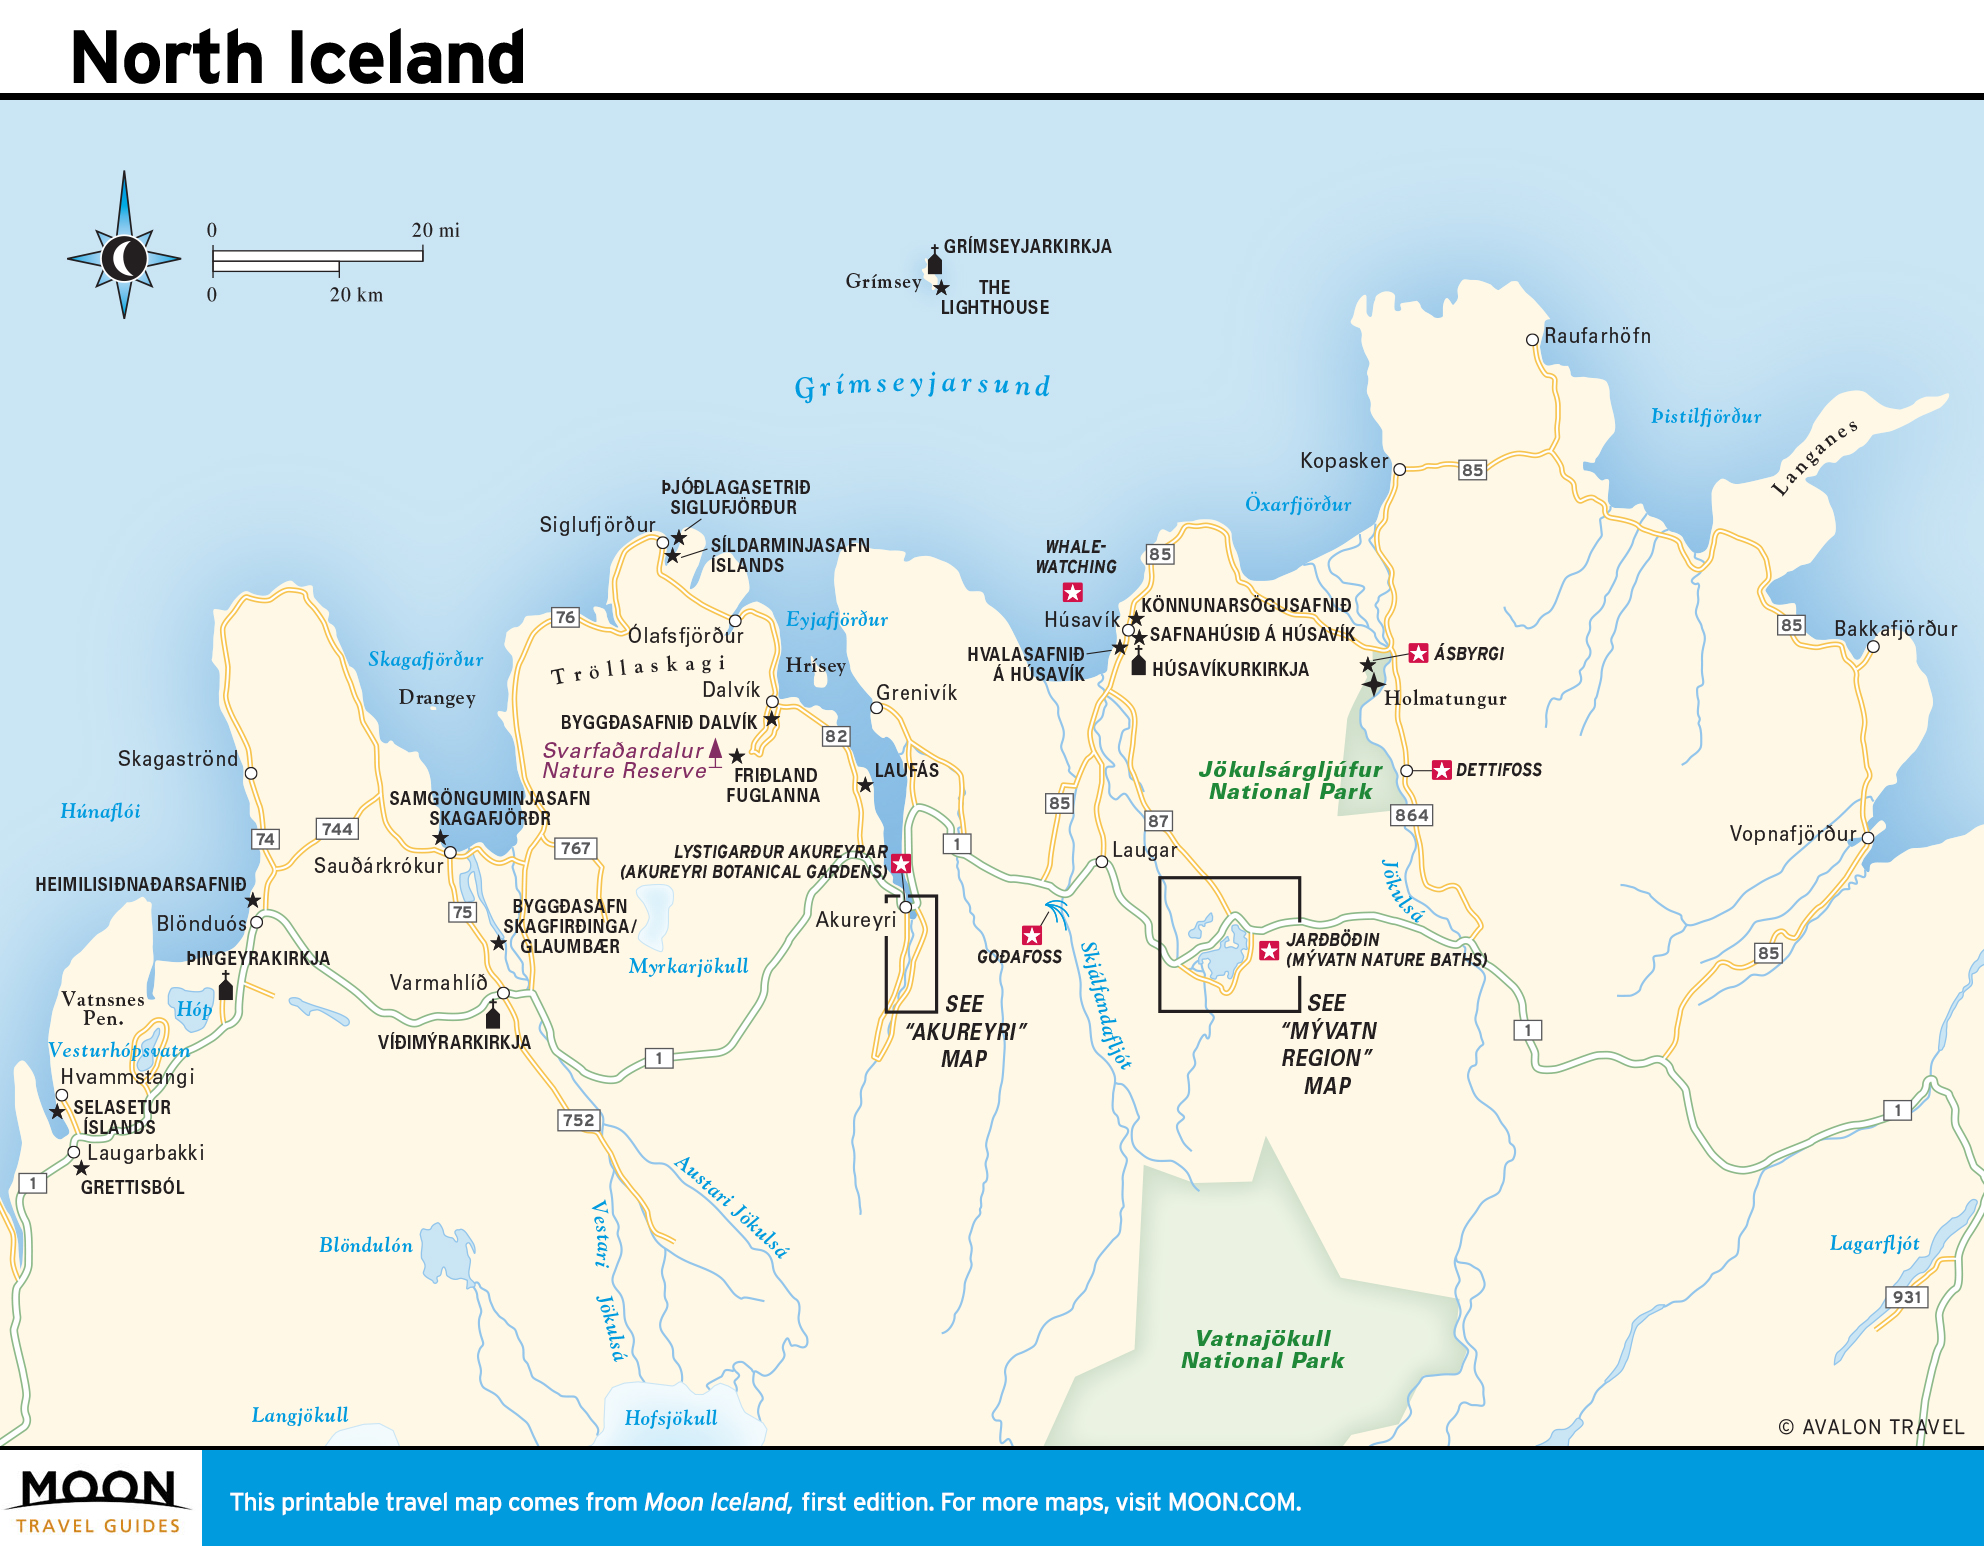 image relating to Printable Map of Iceland referred to as Iceland Moon Generate Publications